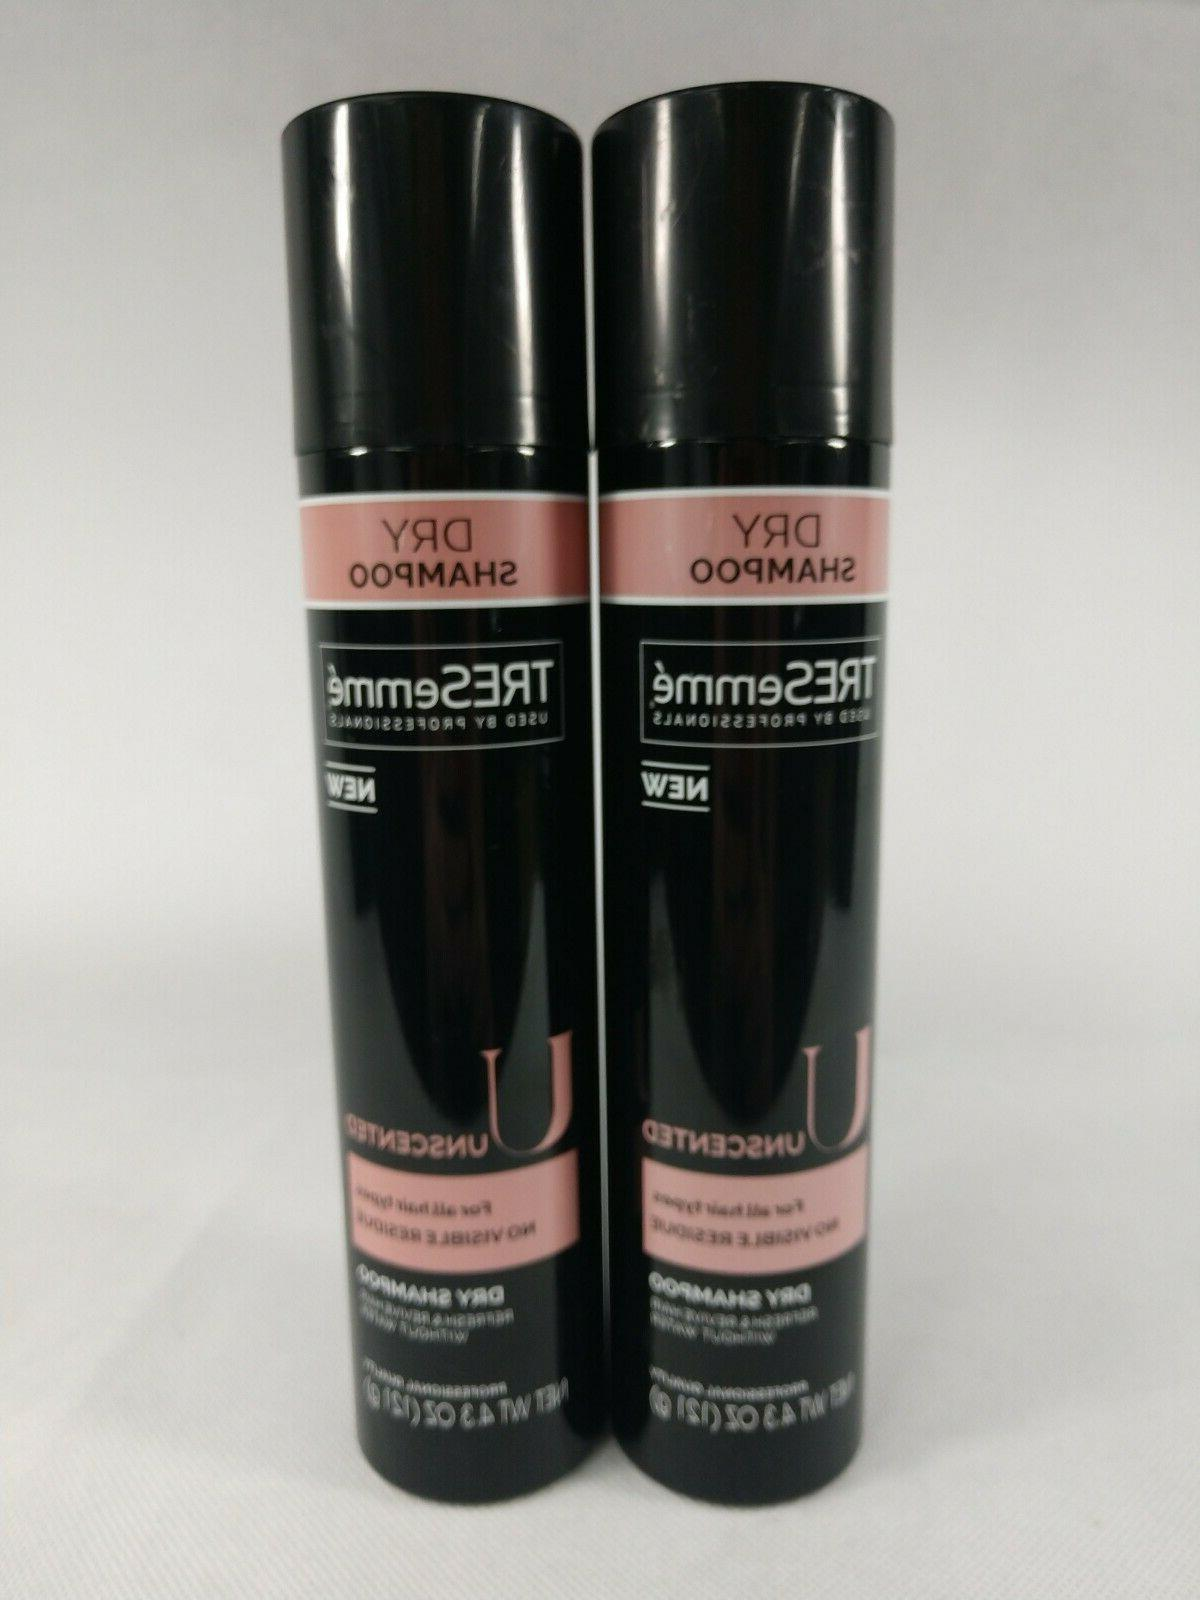 Tresemme Shampoo Dry Unscented 4.3 Ounce